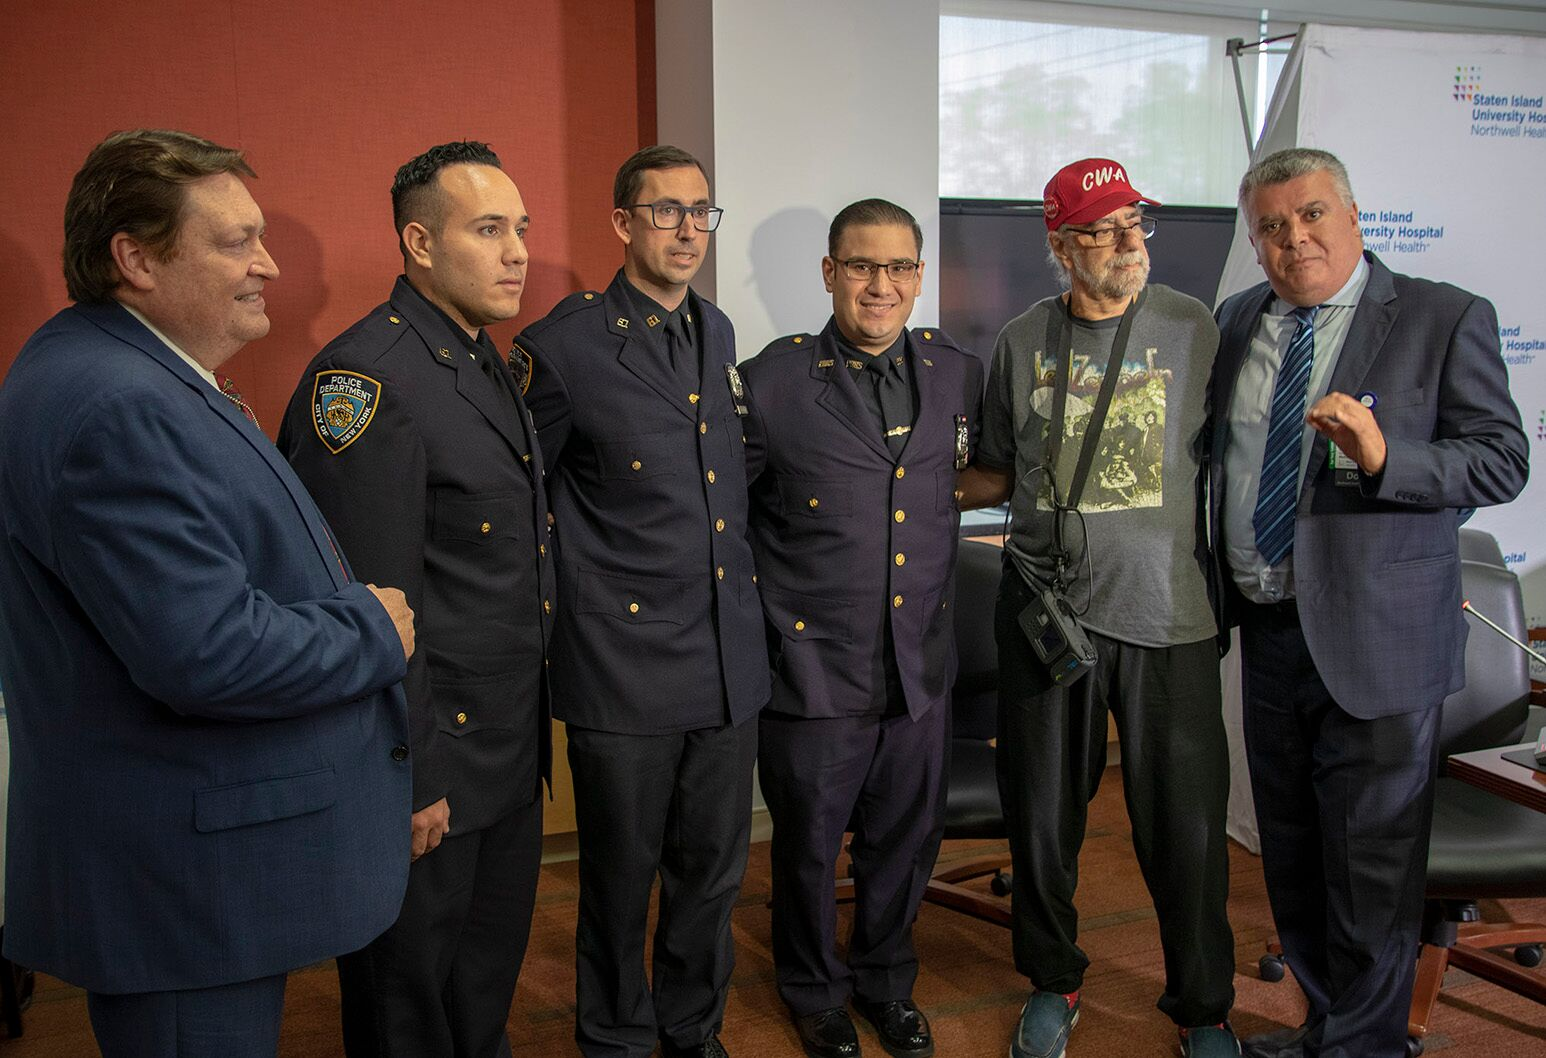 Roy Spiro (red hat) stands with his NYPD and cardiac surgery lifesavers at Staten Island University Hospital.